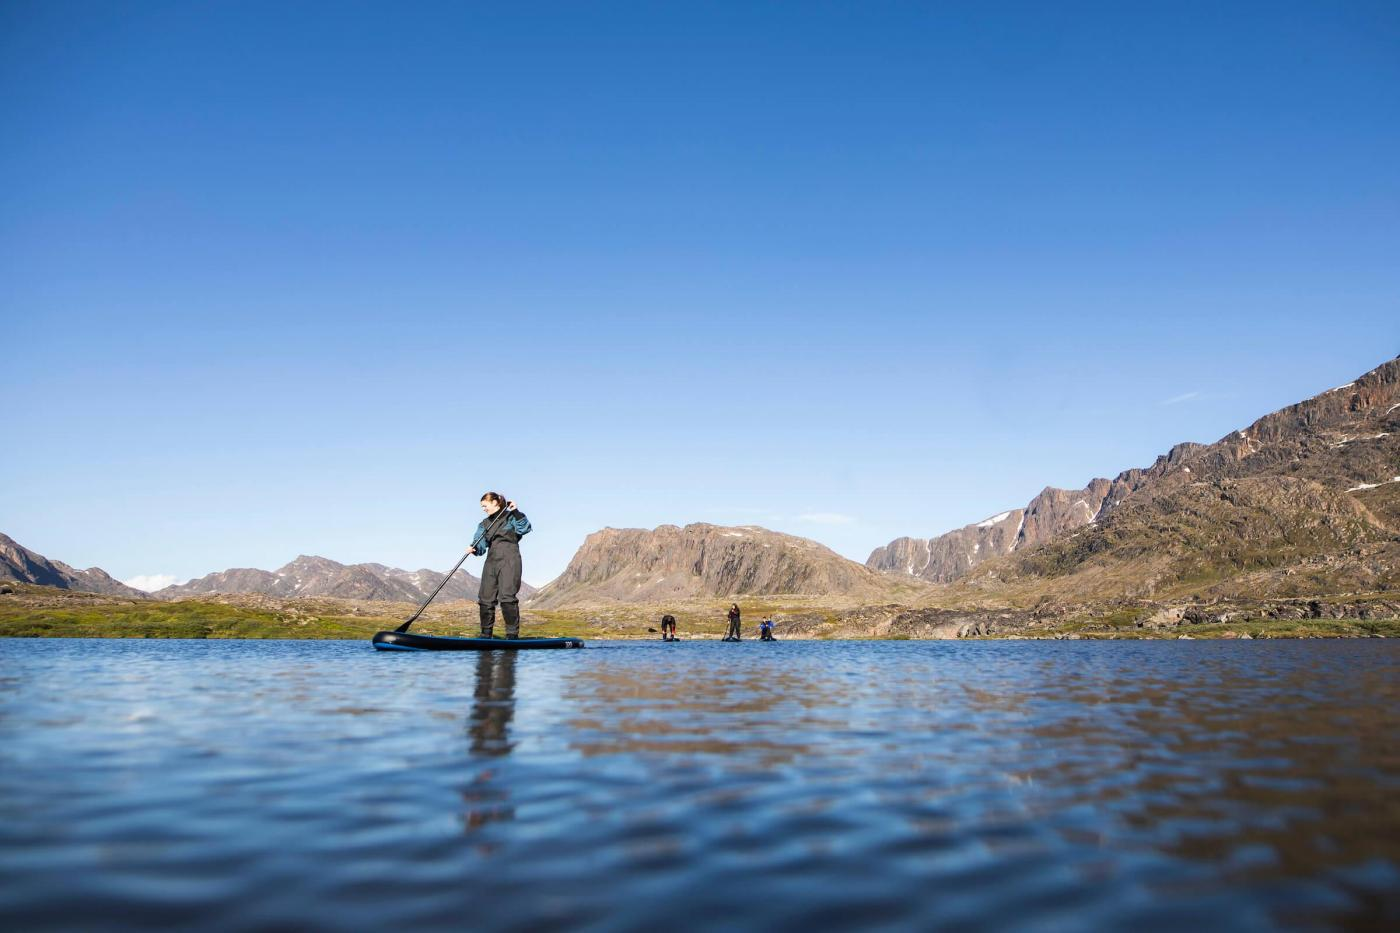 SUP in a lake in Sisimiut. Photo - Aningaaq R. Carlsen, Visit Greenland